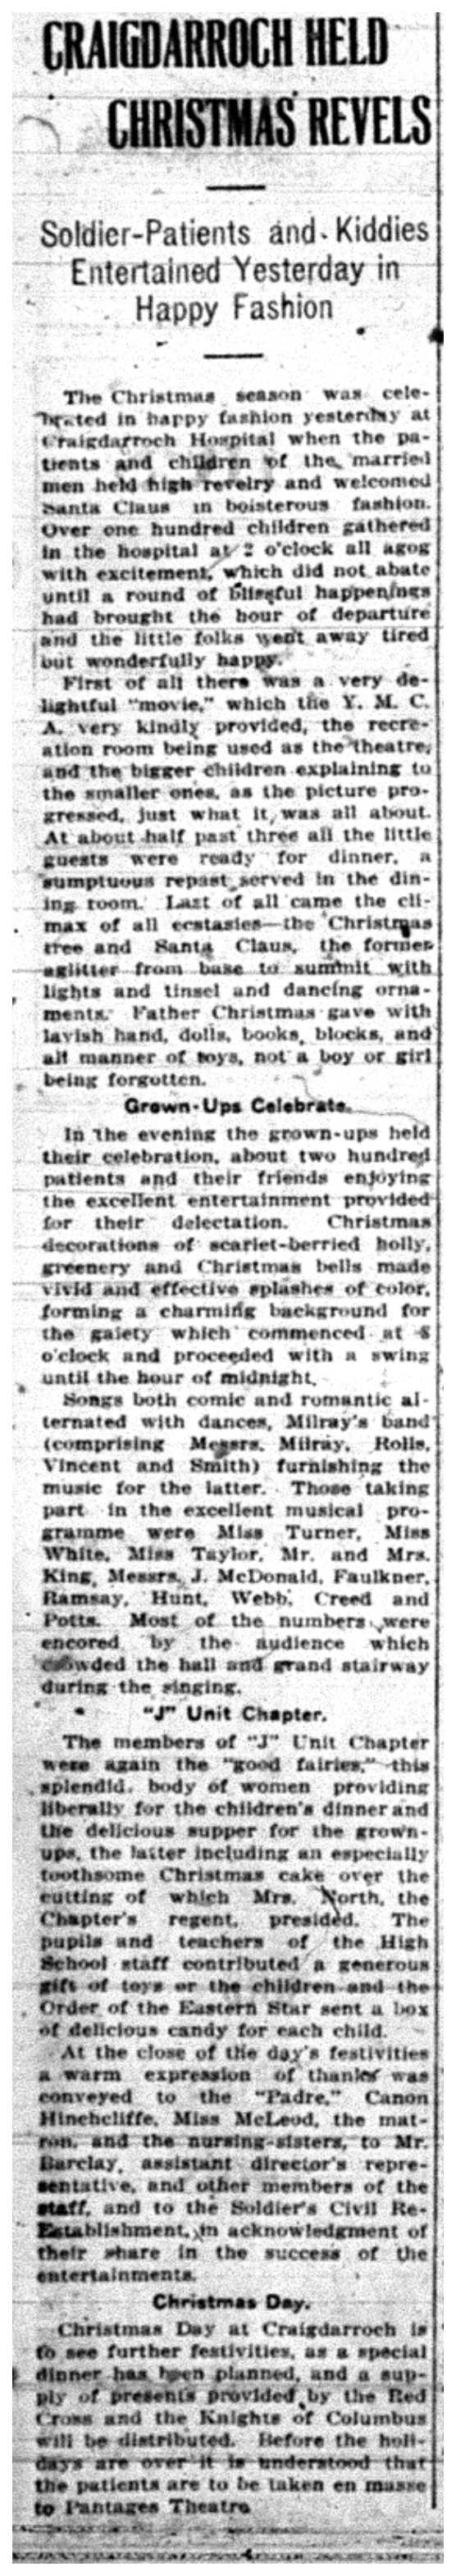 """Craigdarroch Held Christmas Revels"""